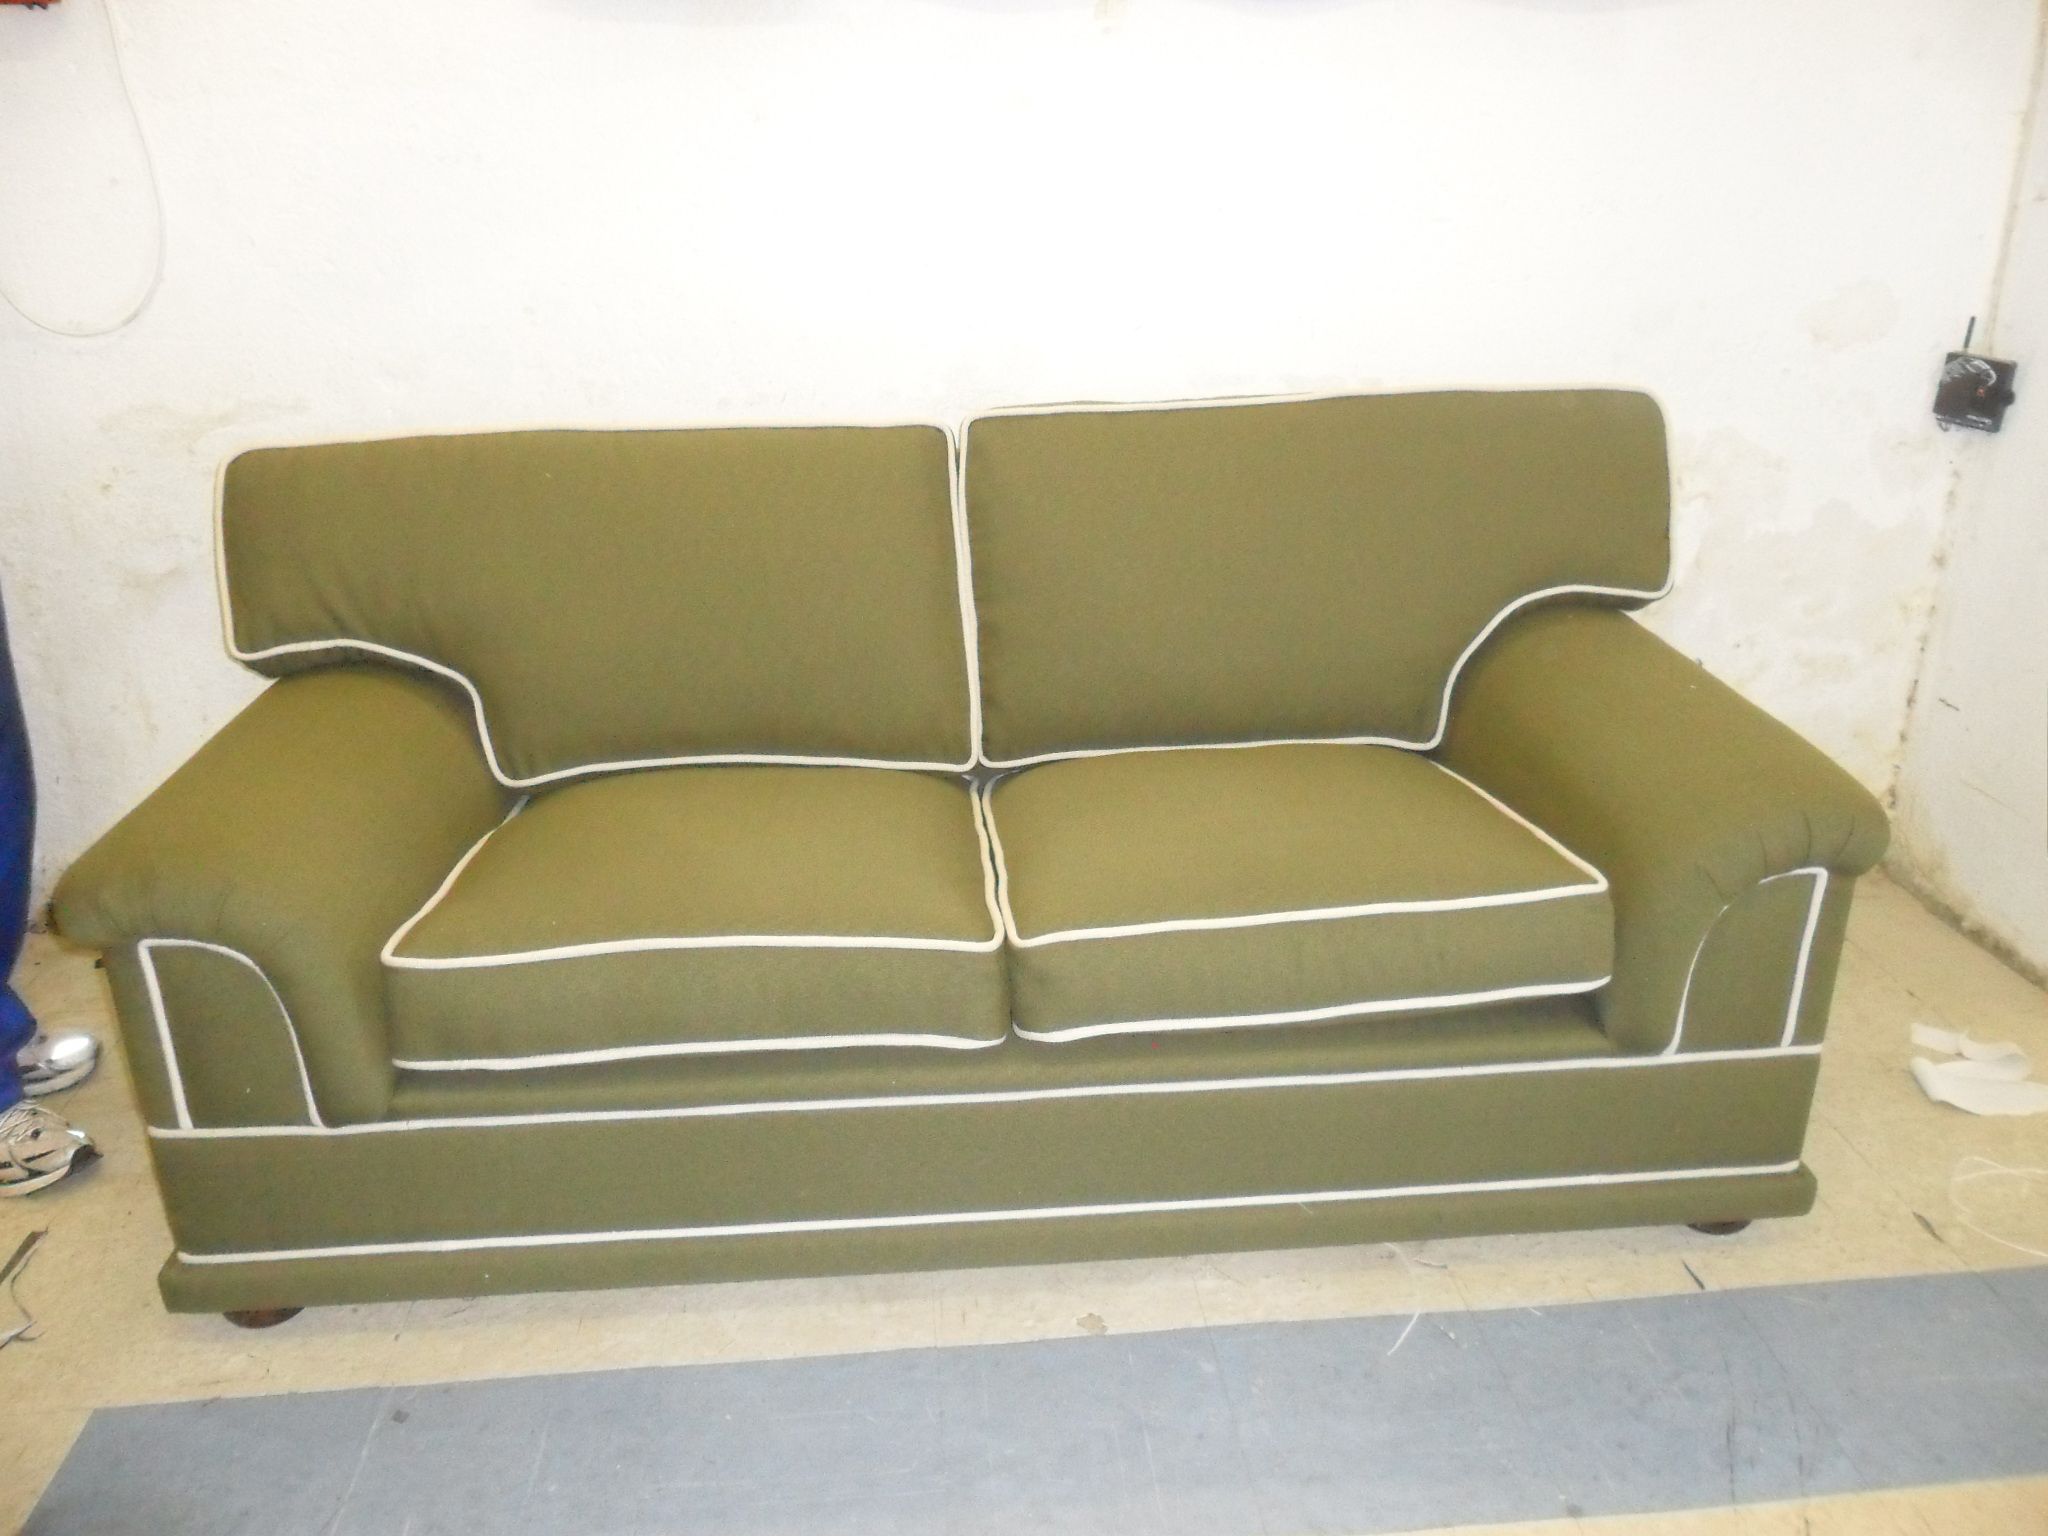 Couch Upholstery Fourways Guest House Furniture Upholstery Tomio Craft Upholsterers